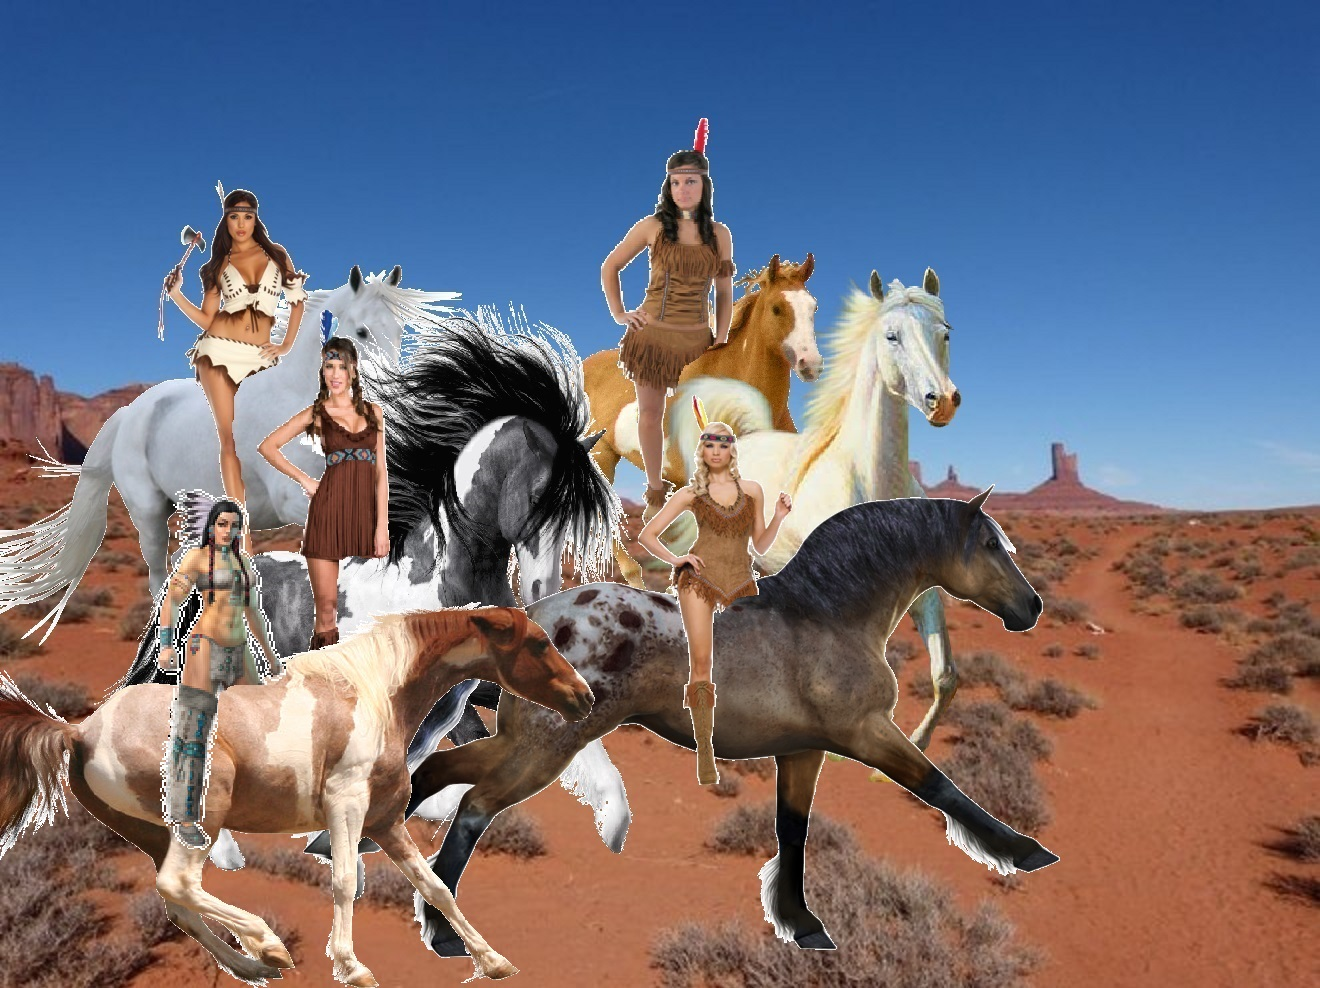 A Group Of Brave Strong And Skilled Sexy Native American Women